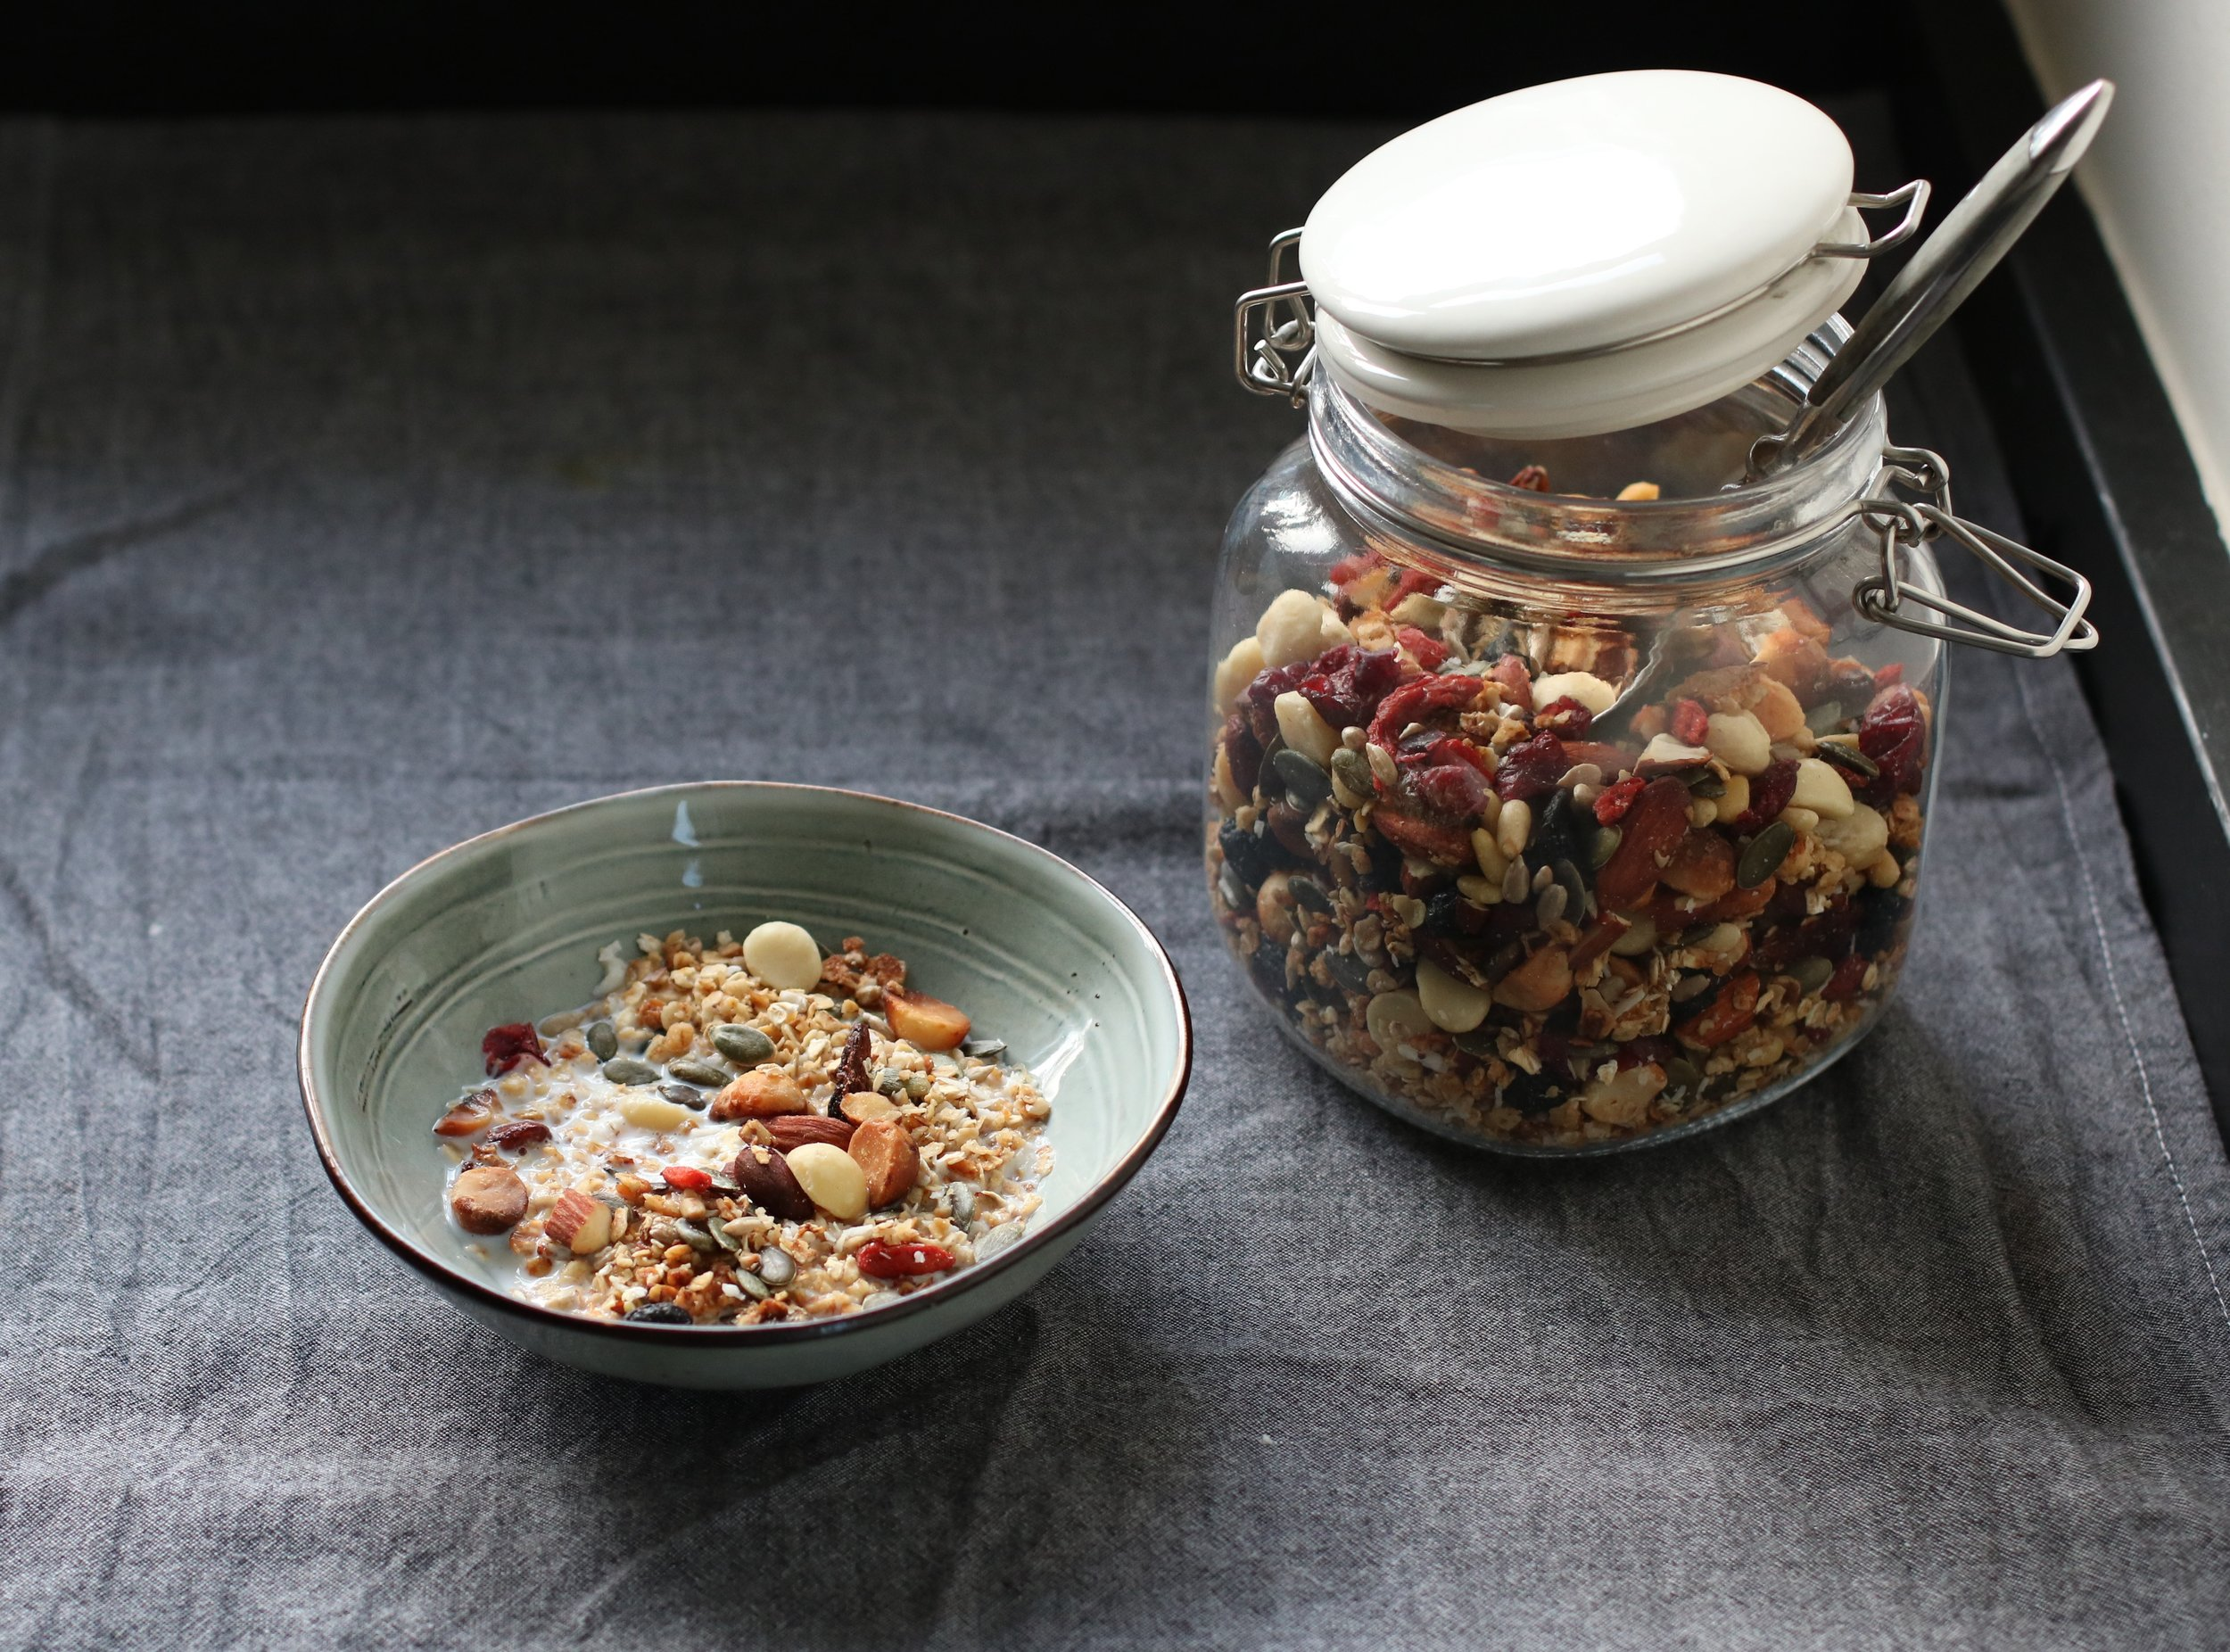 HONEY & OAT GRANOLA   All year round.  A hearty homemade cereal packed with the good stuff.